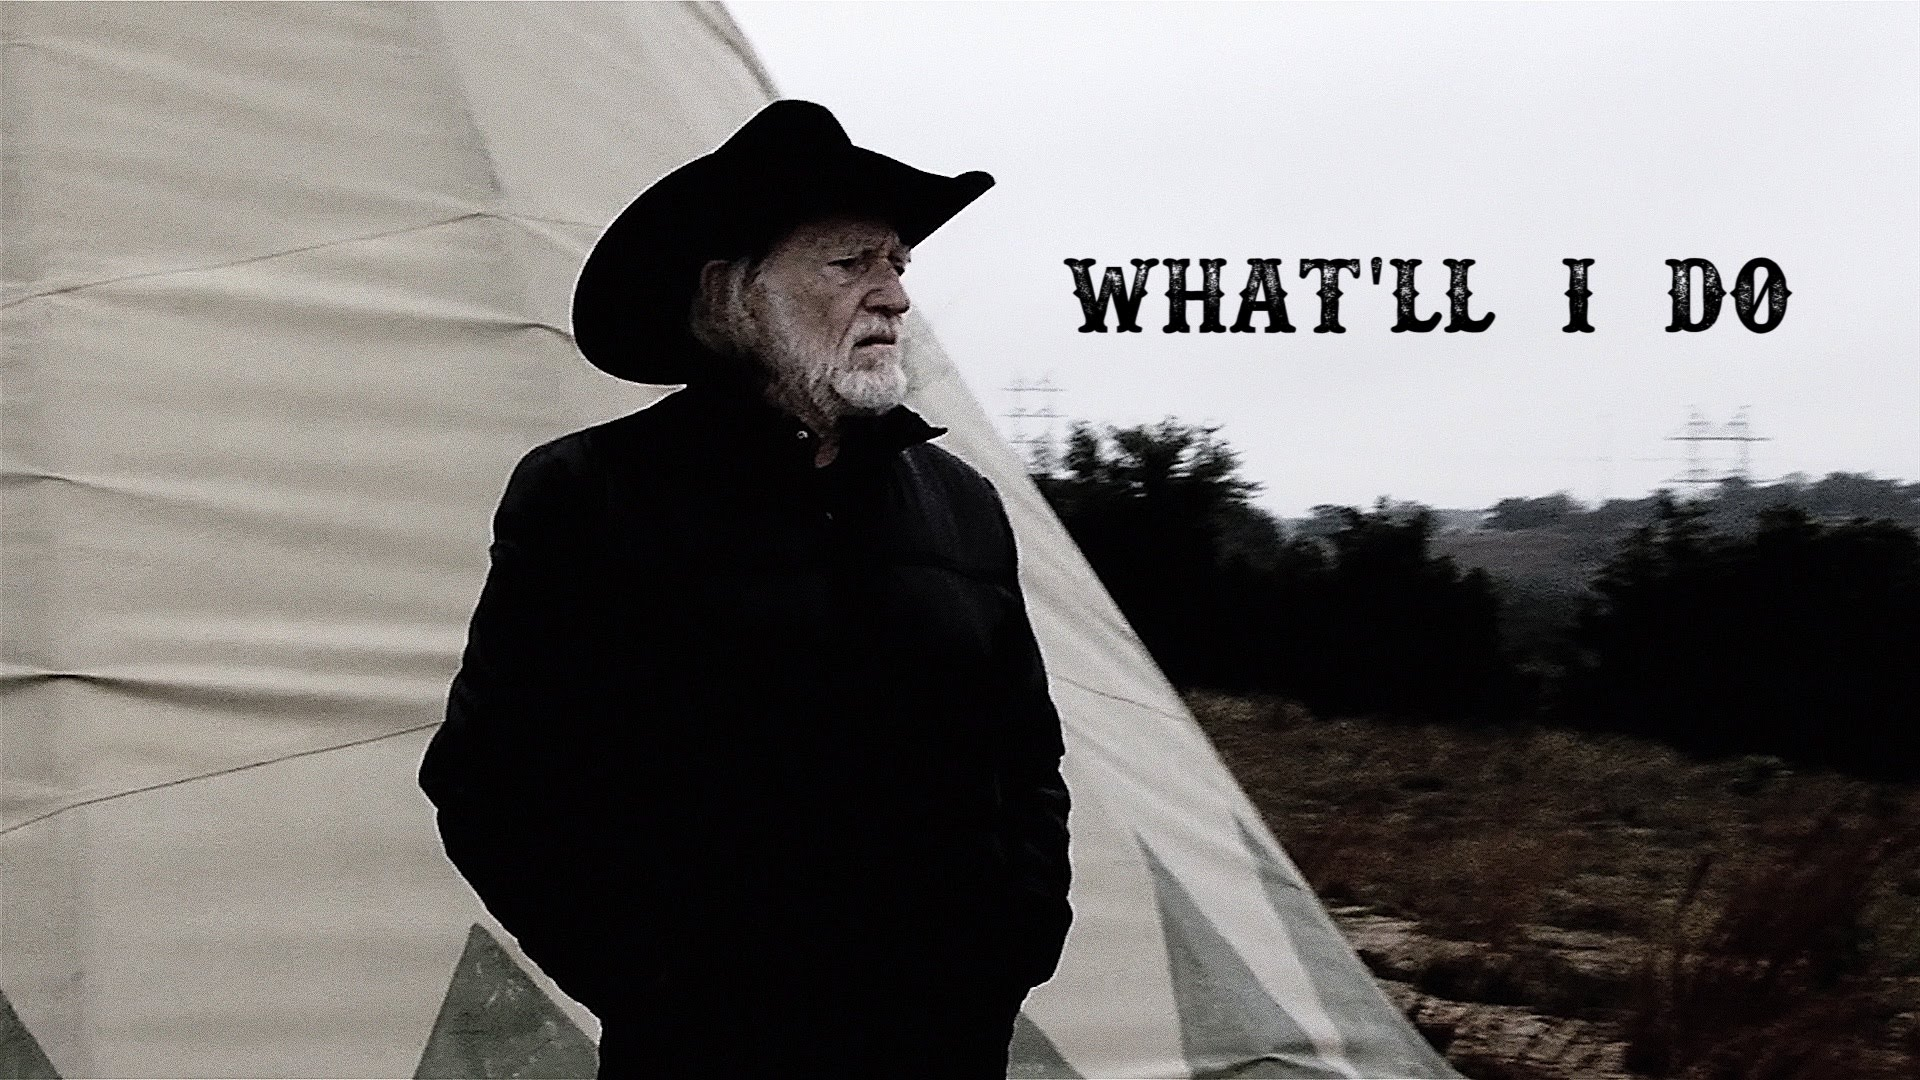 Willie Nelson What'll I Do